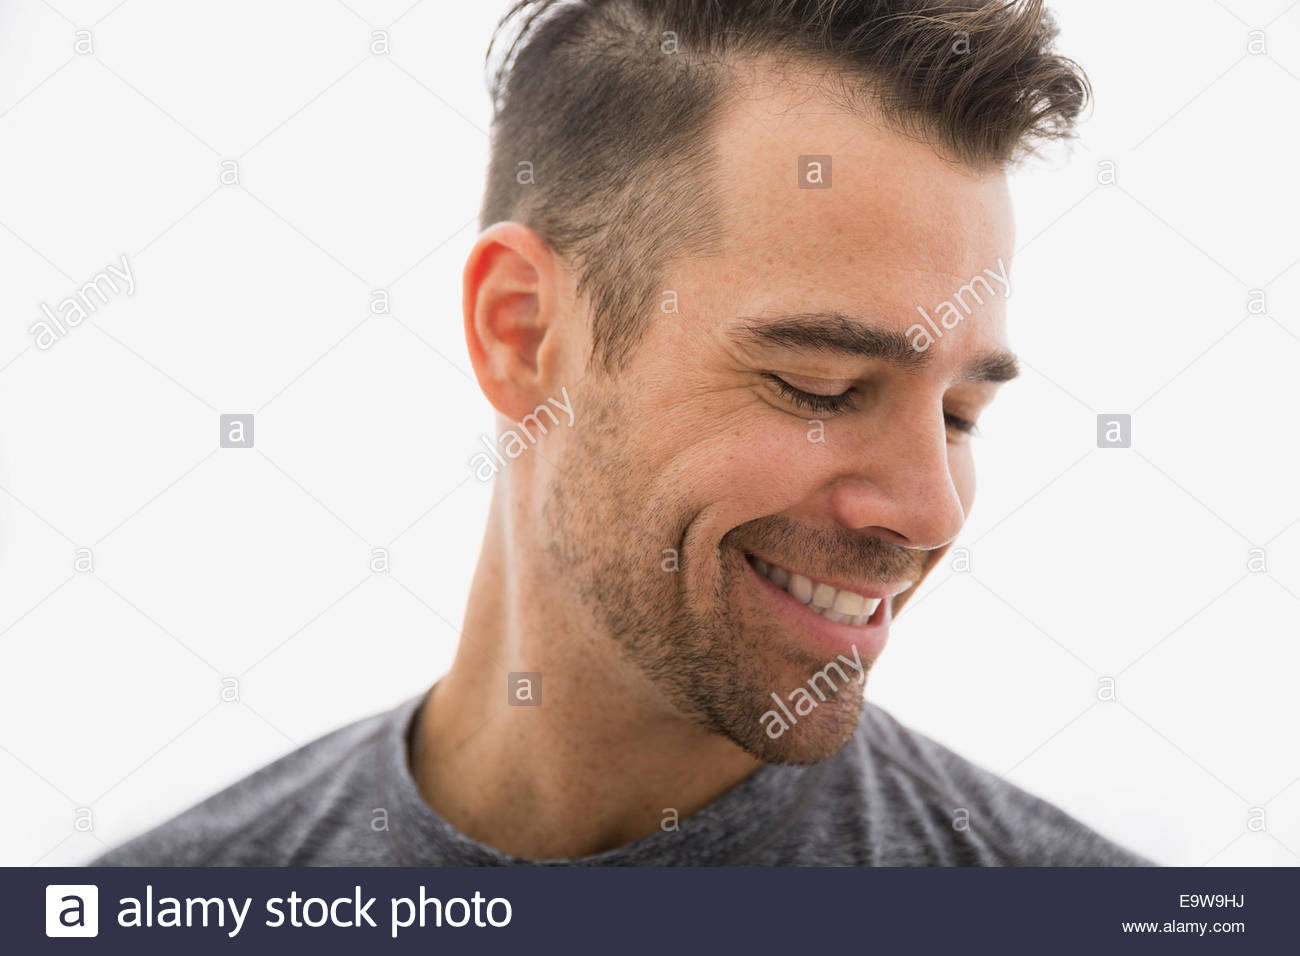 Close up of smiling brunette man looking down Photo Stock